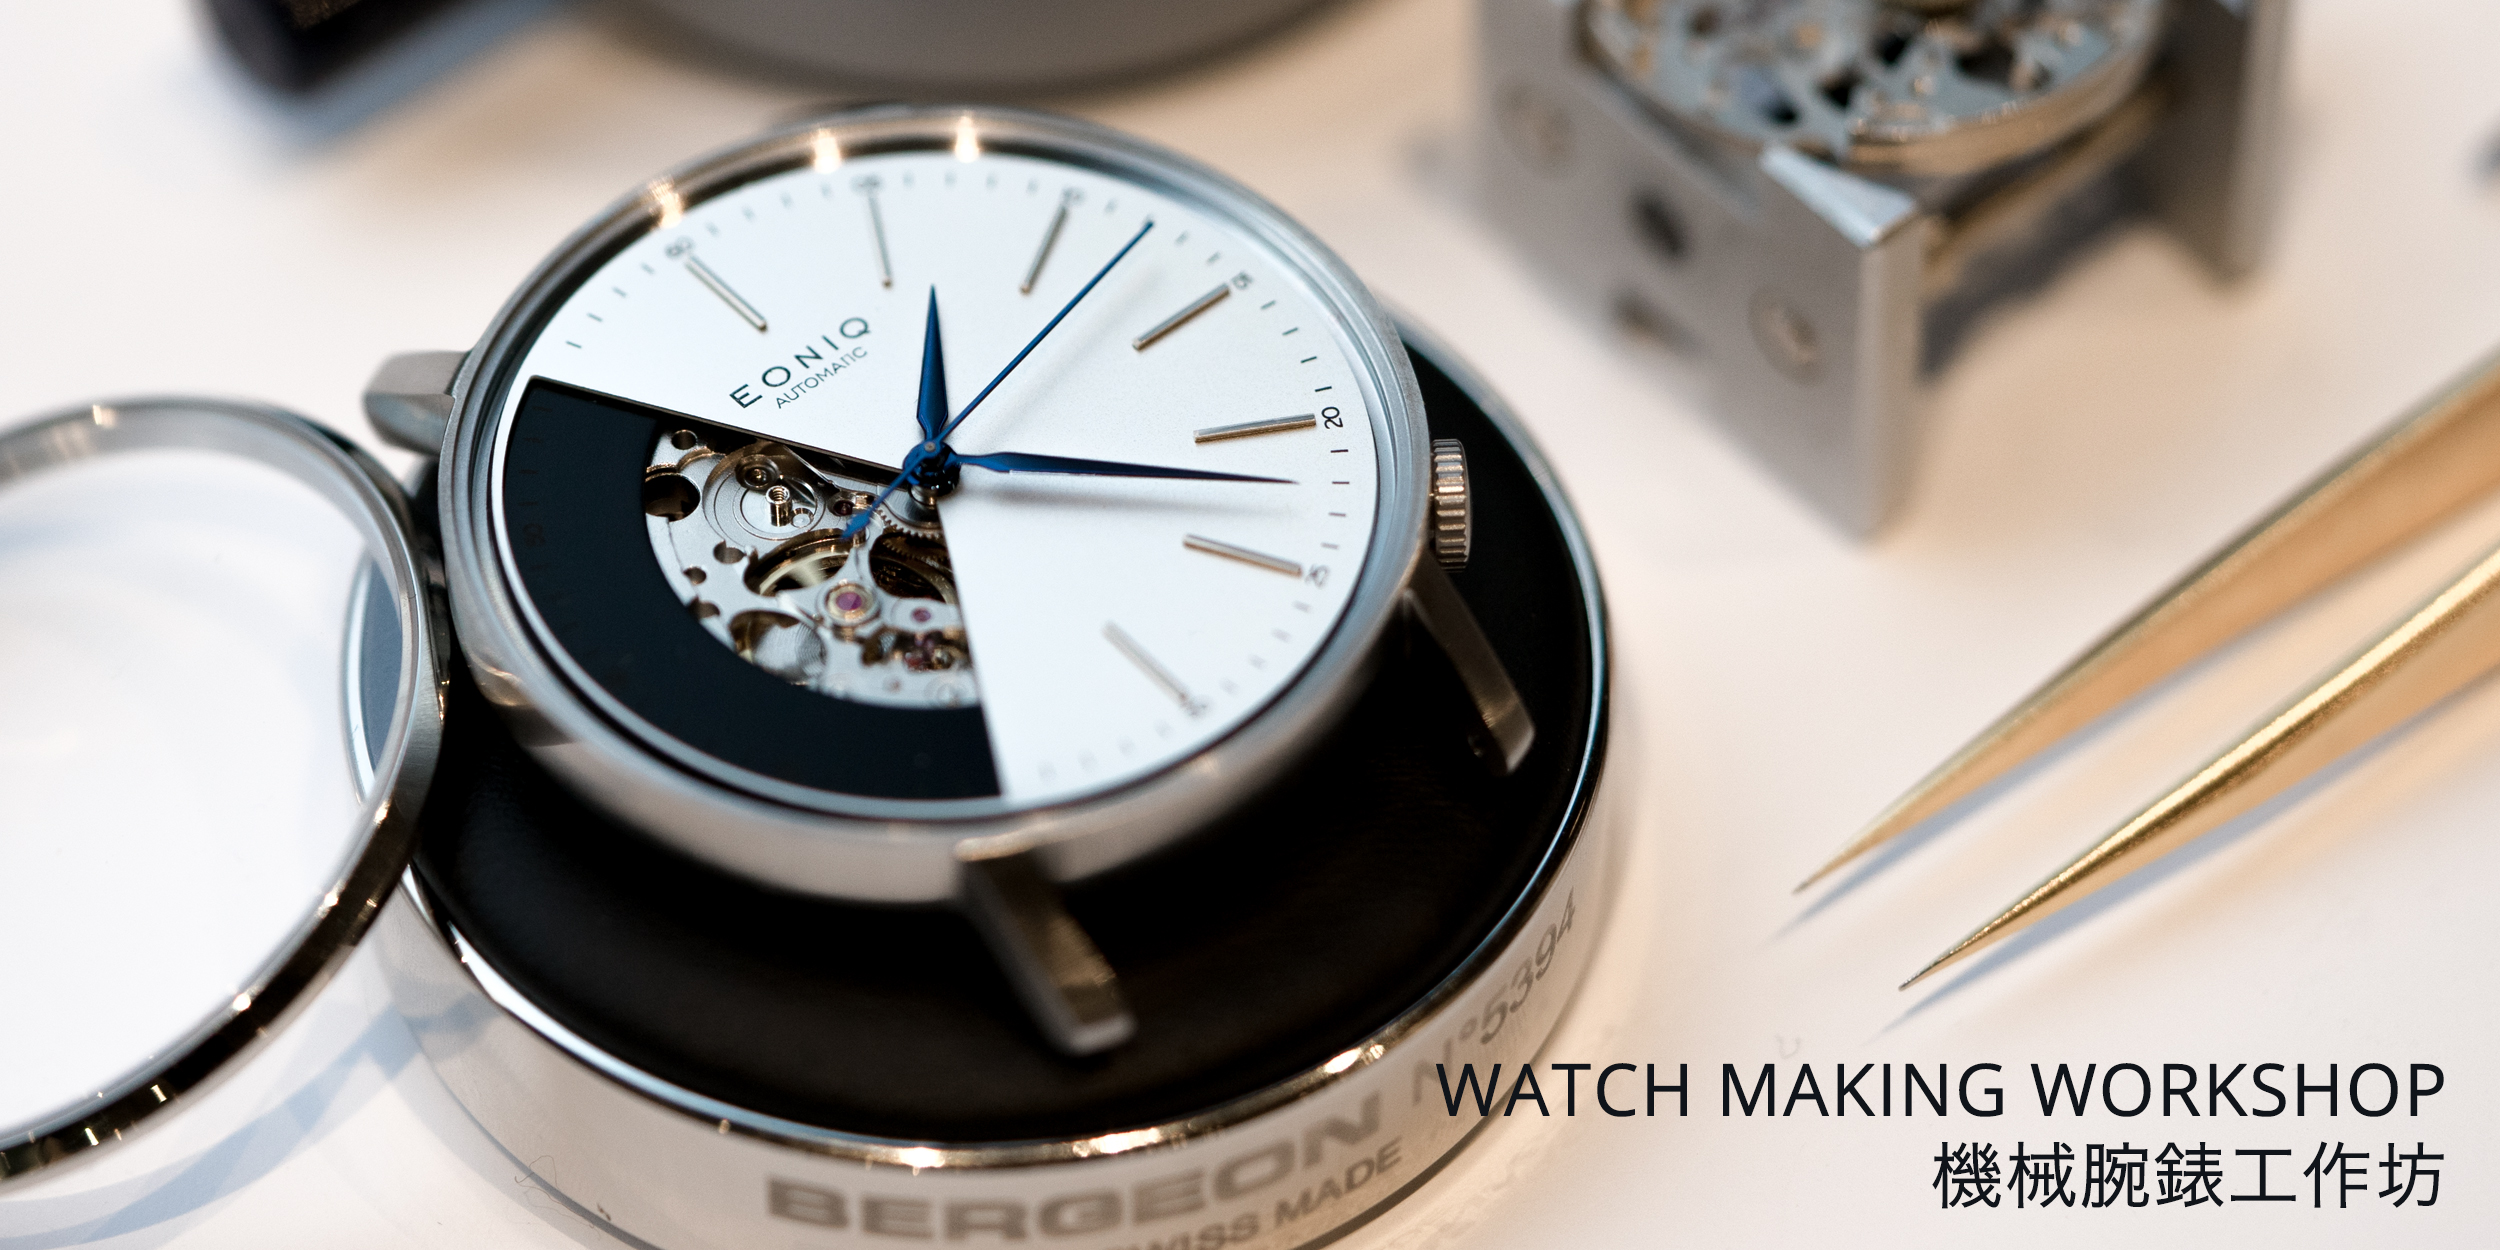 Watch Making Workshop